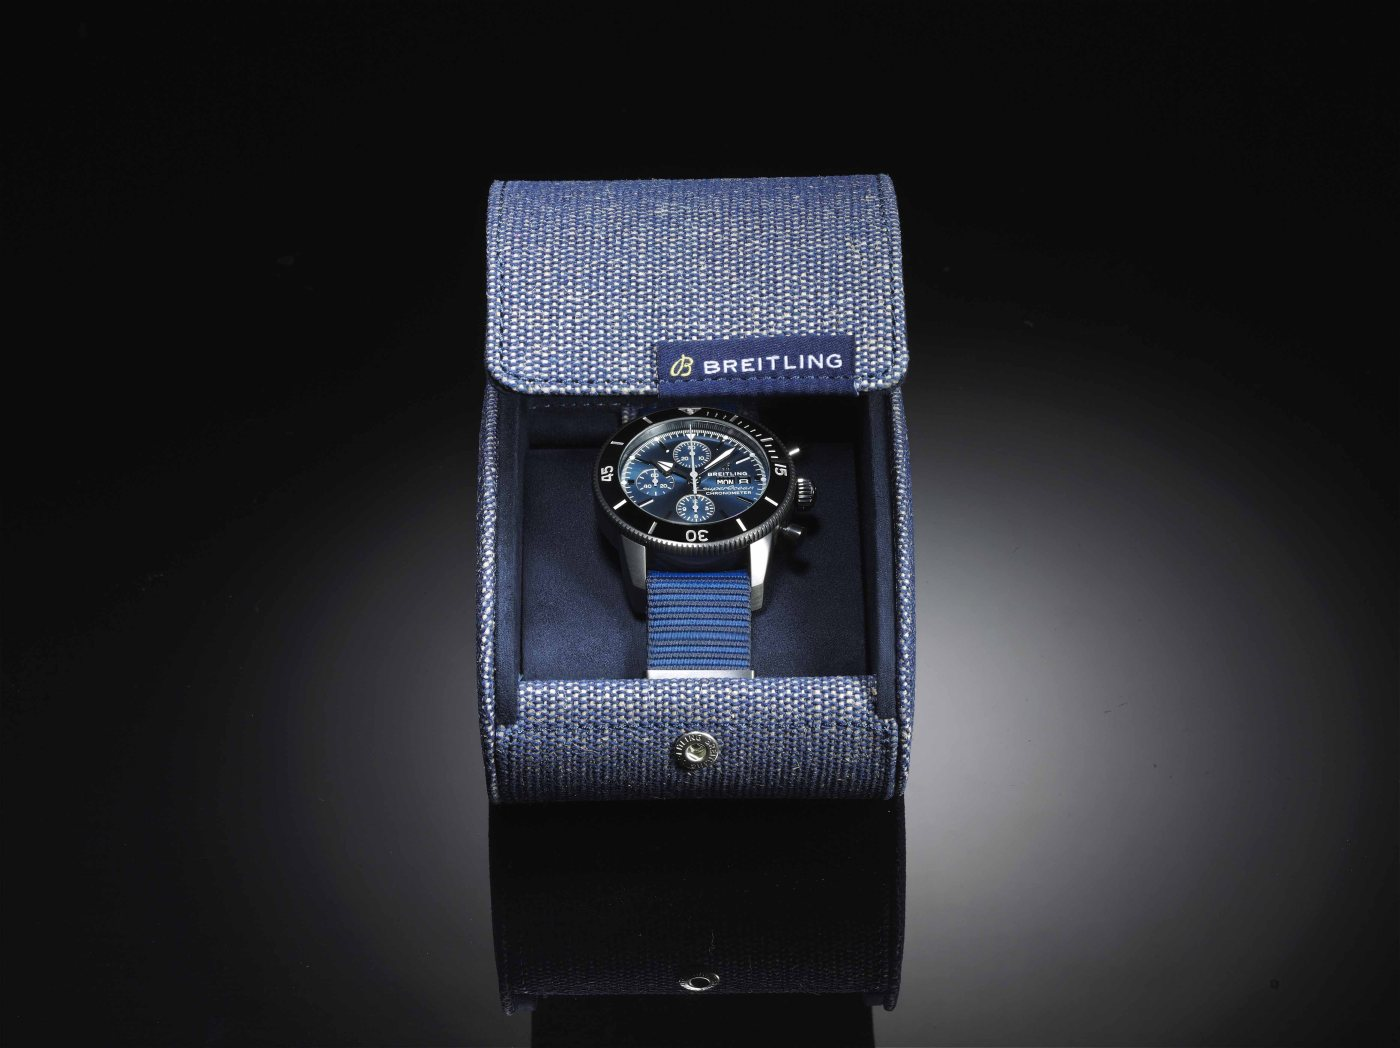 Superocean Heritage II Chronograph 44 Outerknown packaging